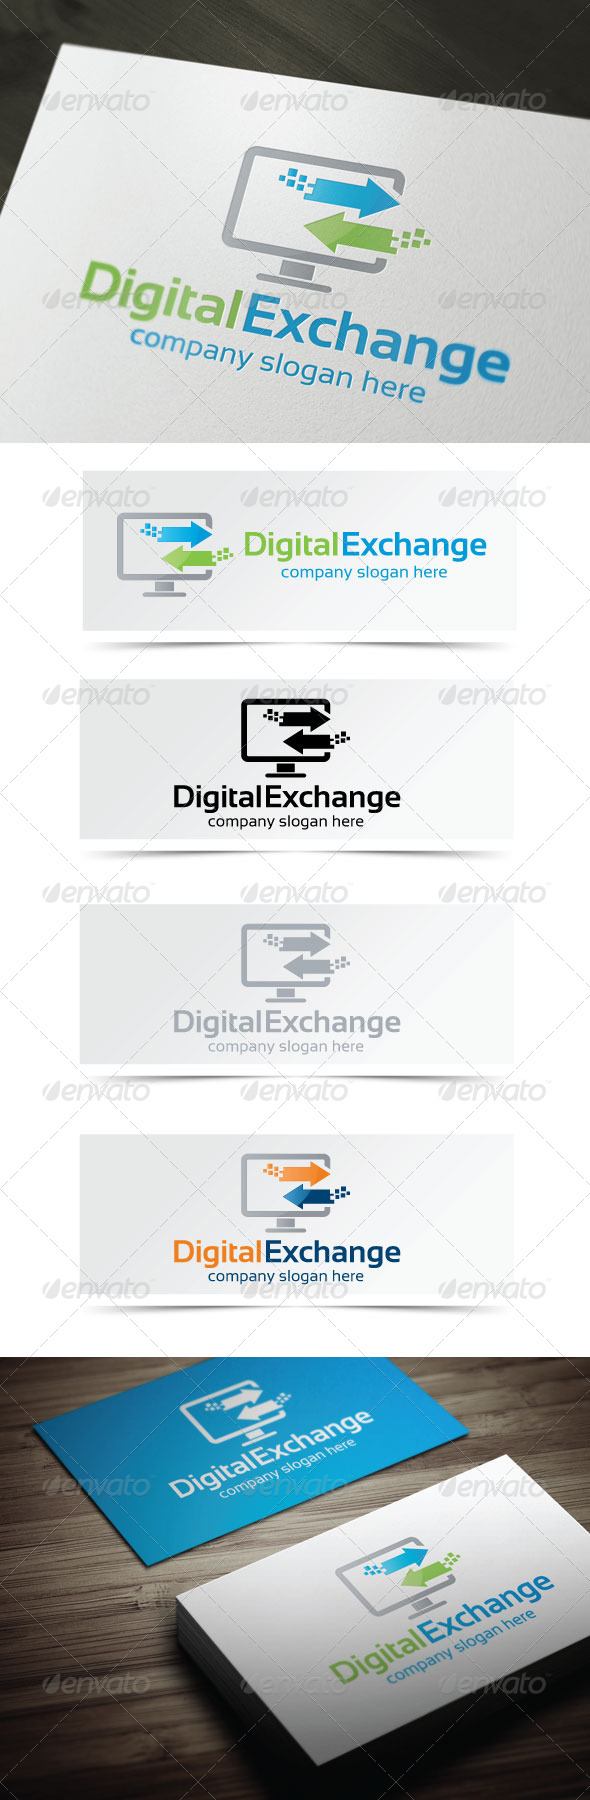 GraphicRiver Digital Exchange 4355928